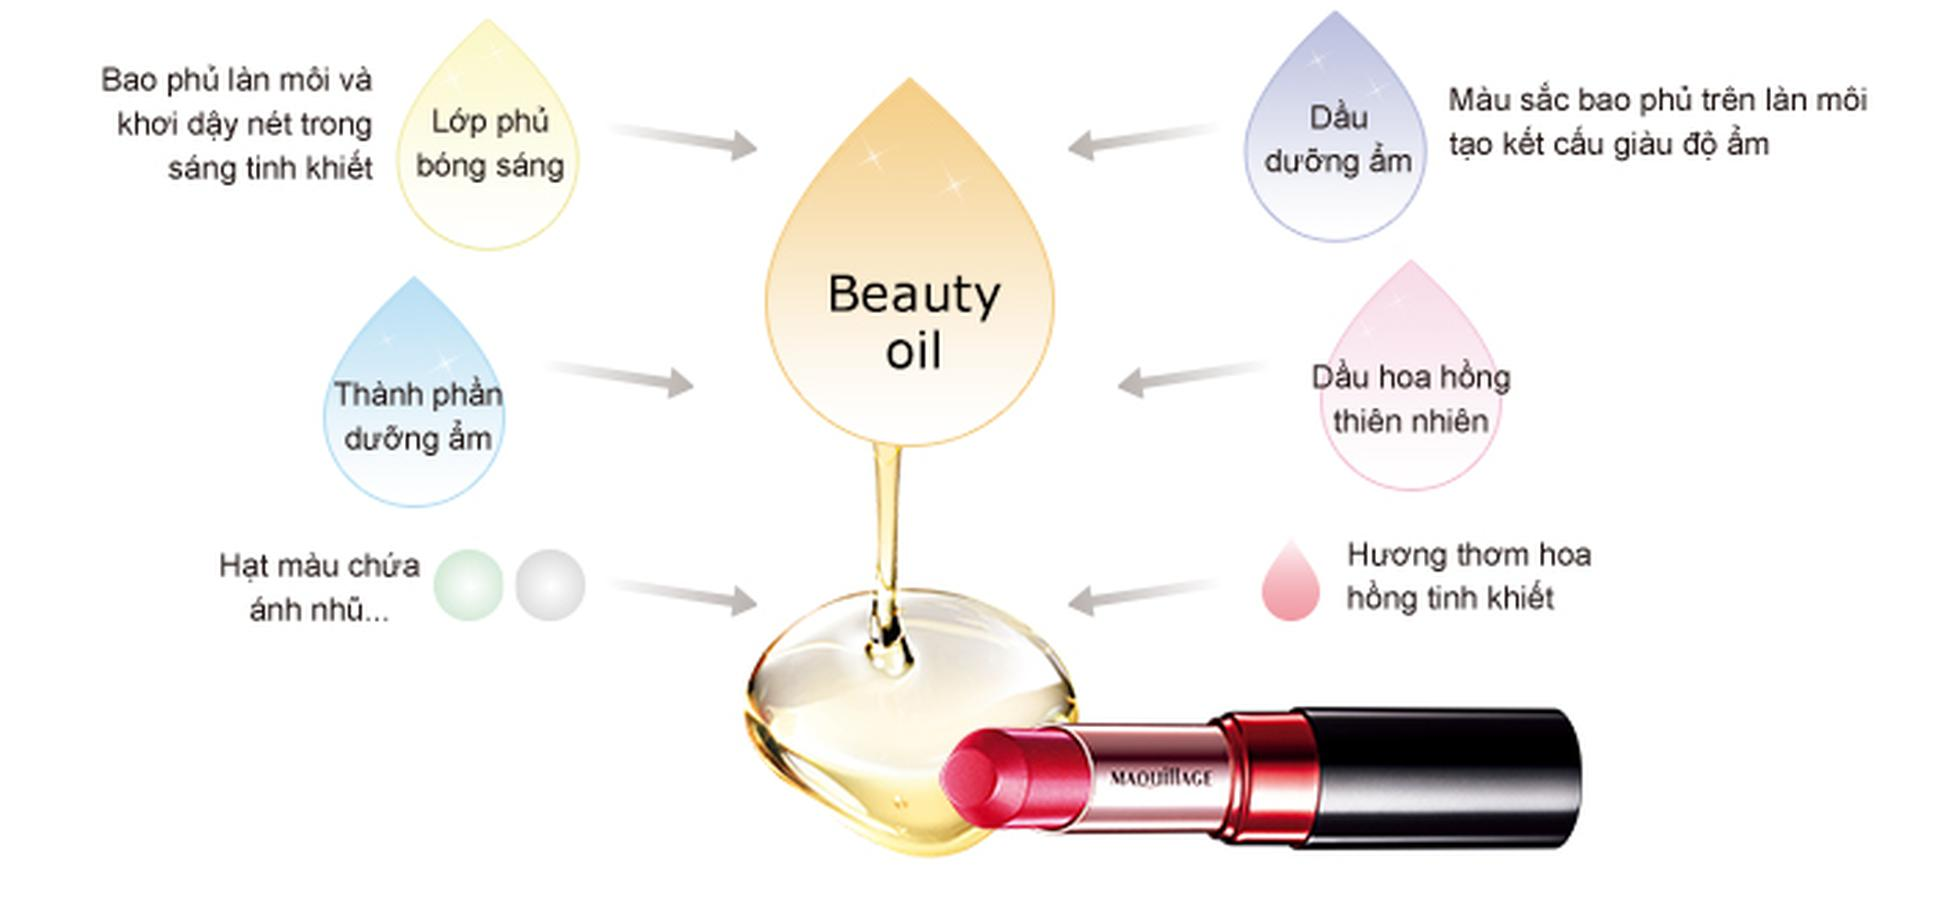 Son Shiseido Maquillage Dramatic Melting Rouge Nhật Bản